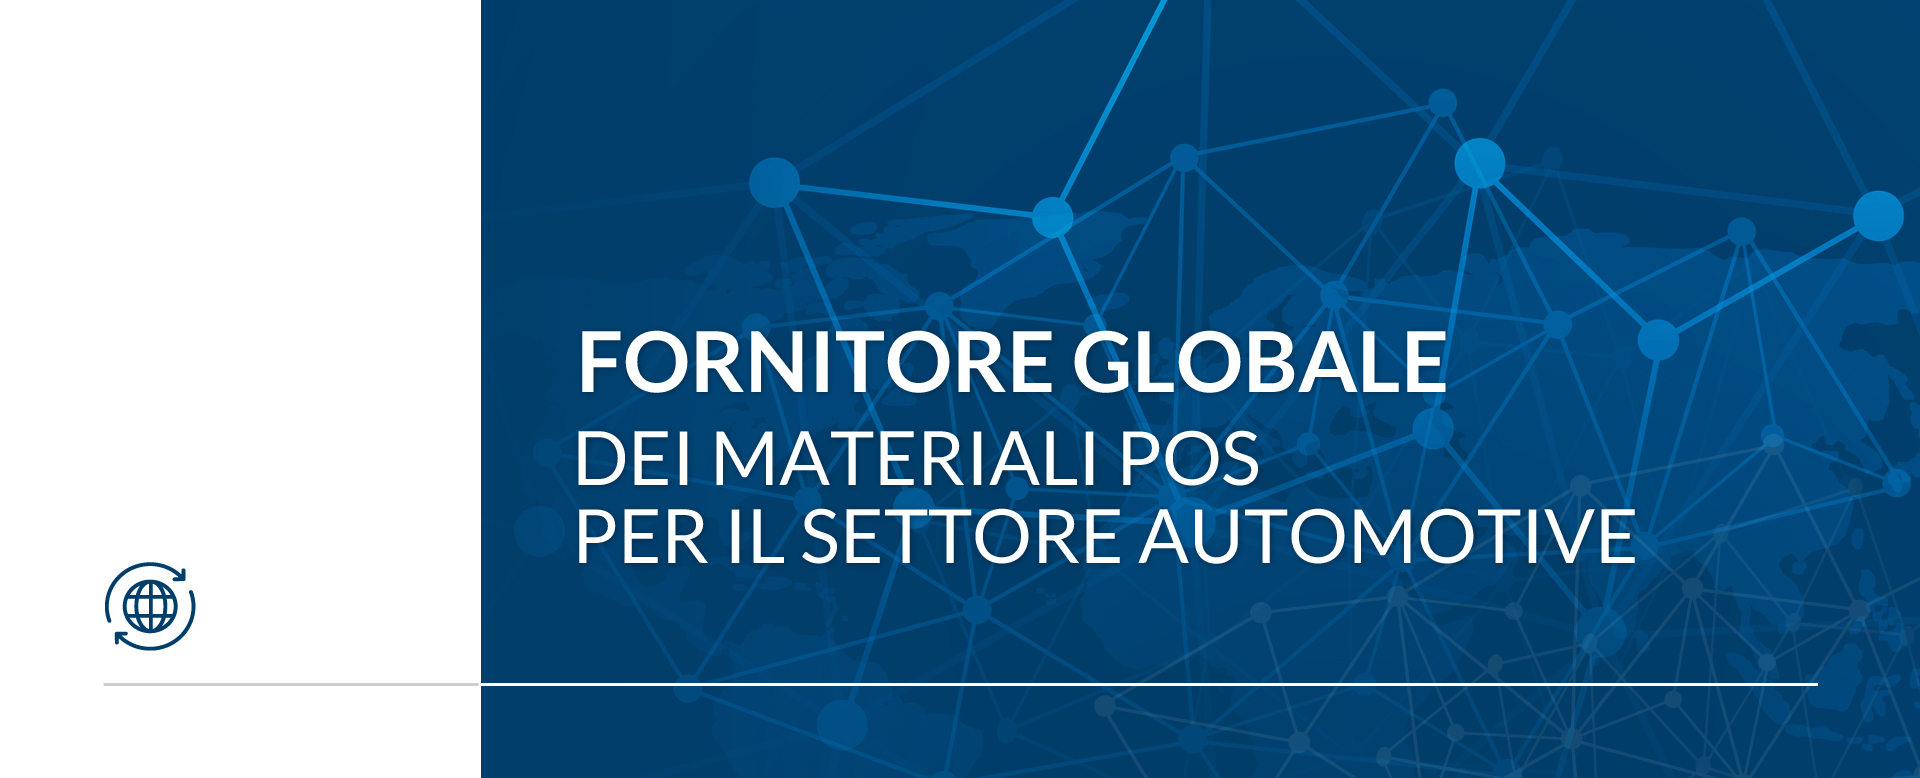 CSP fornitore globale - CSP2